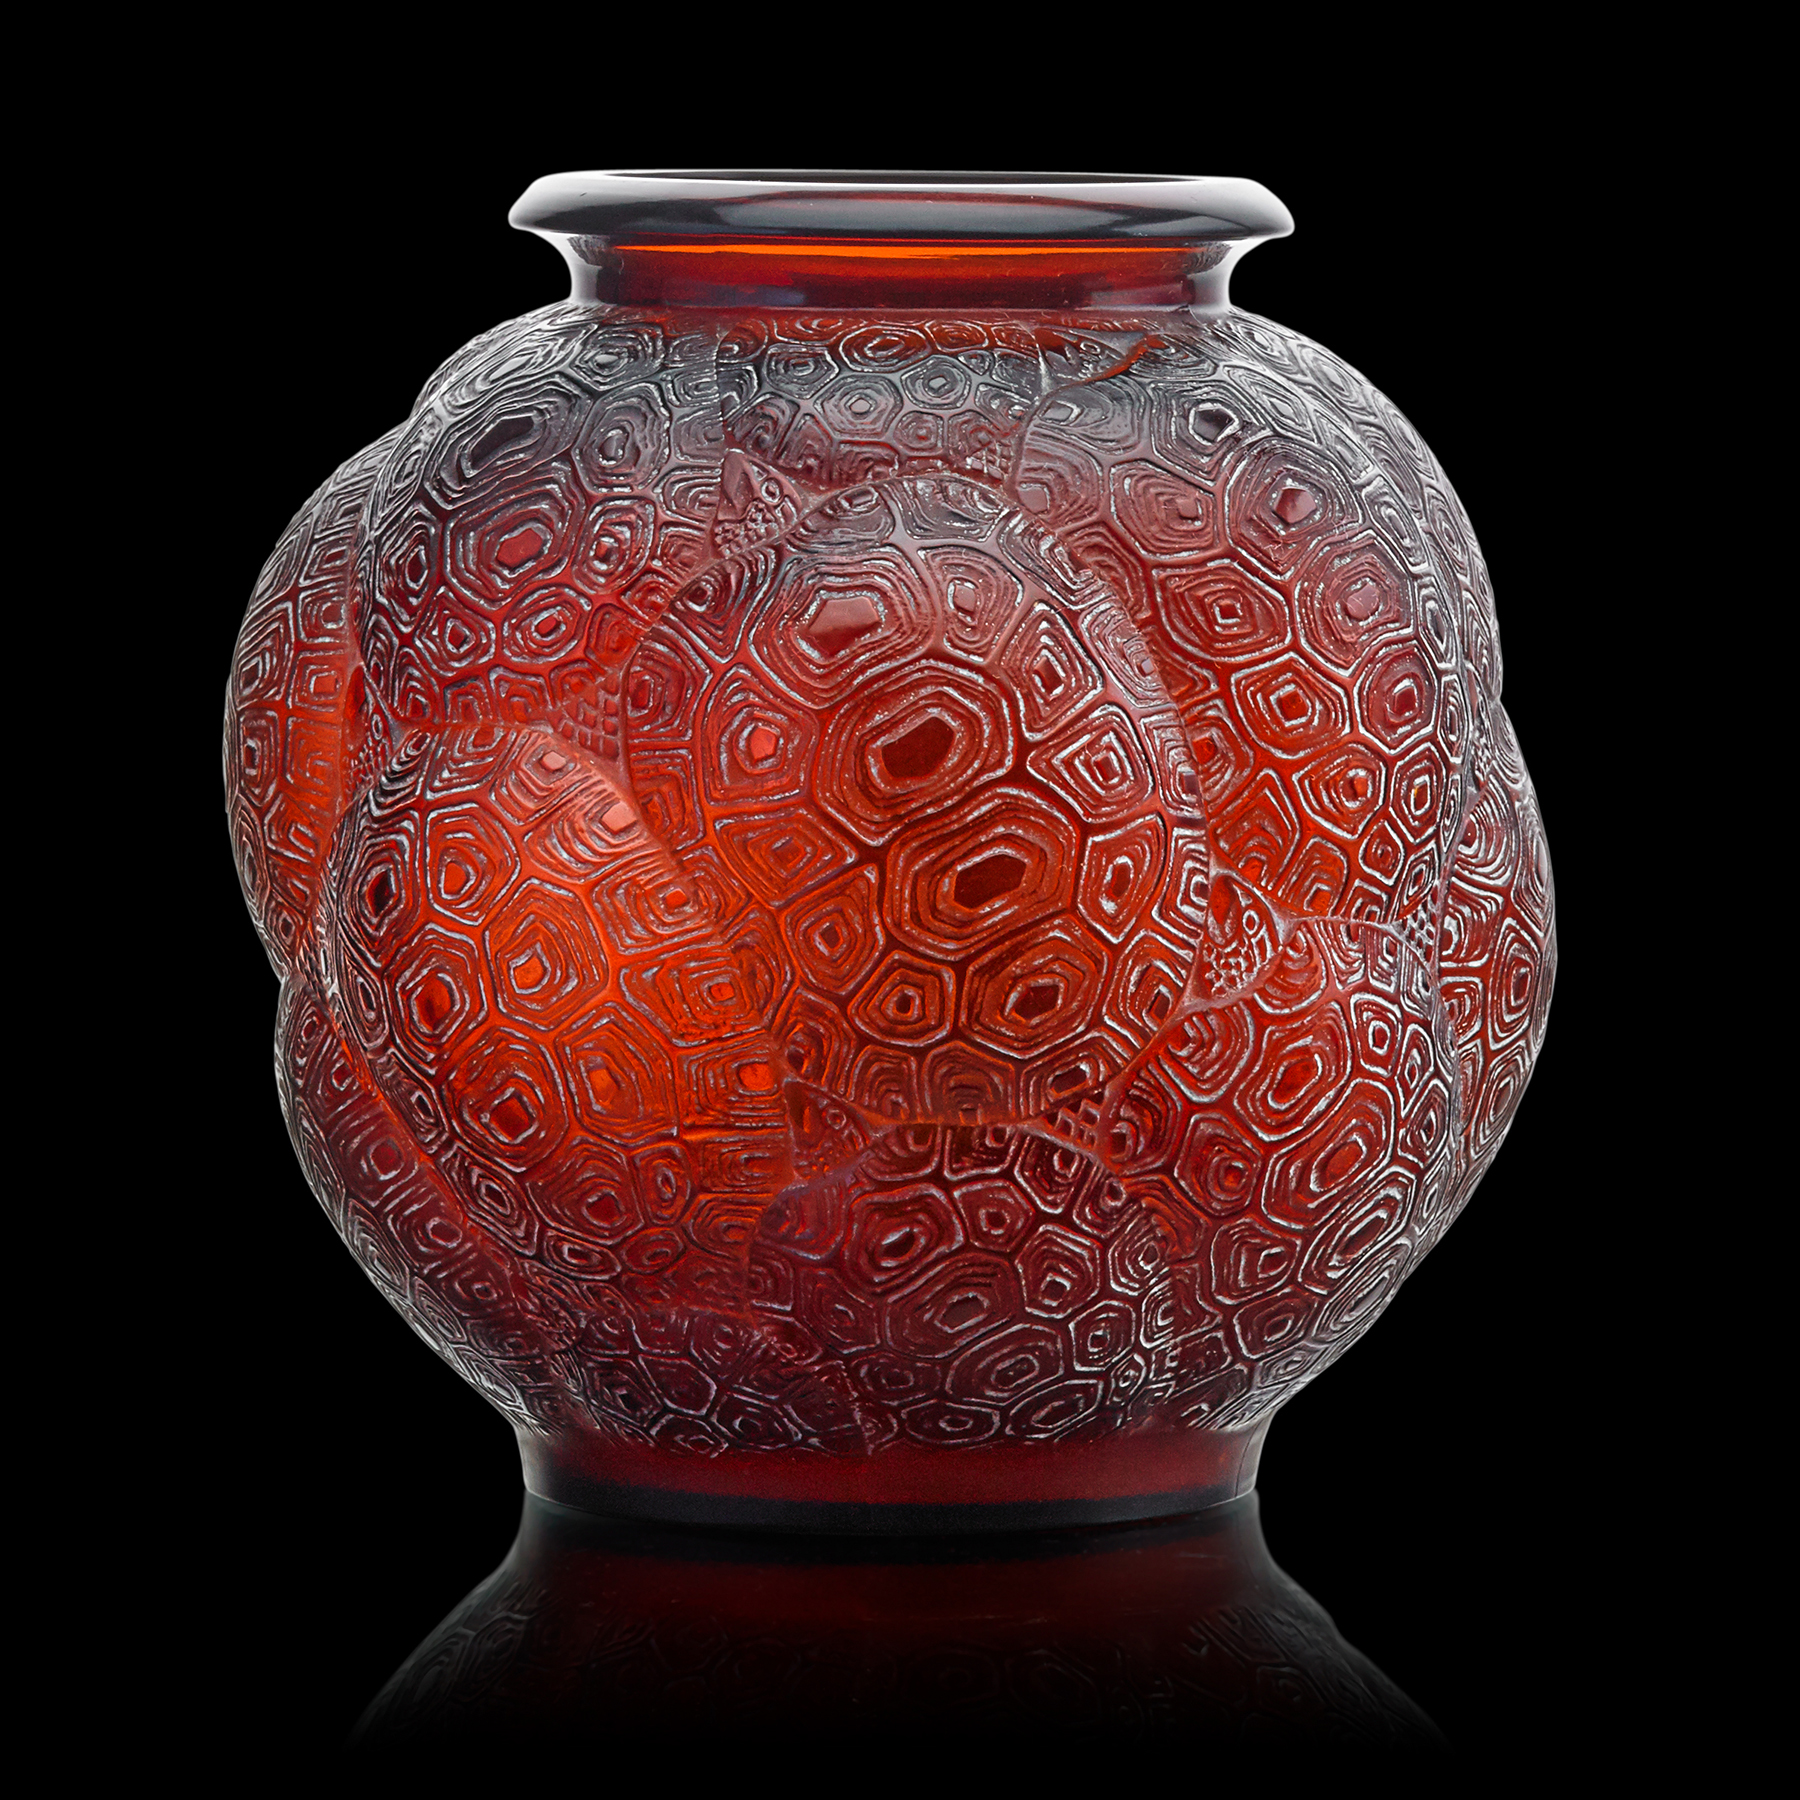 A Tortues (Turtles) vase by the French glass master and entrepreneur René Lalique, rendered in amber glass with a hand-applied white patina. It was designed in 1926 and produced between 1926 and 1945, when Lalique died.